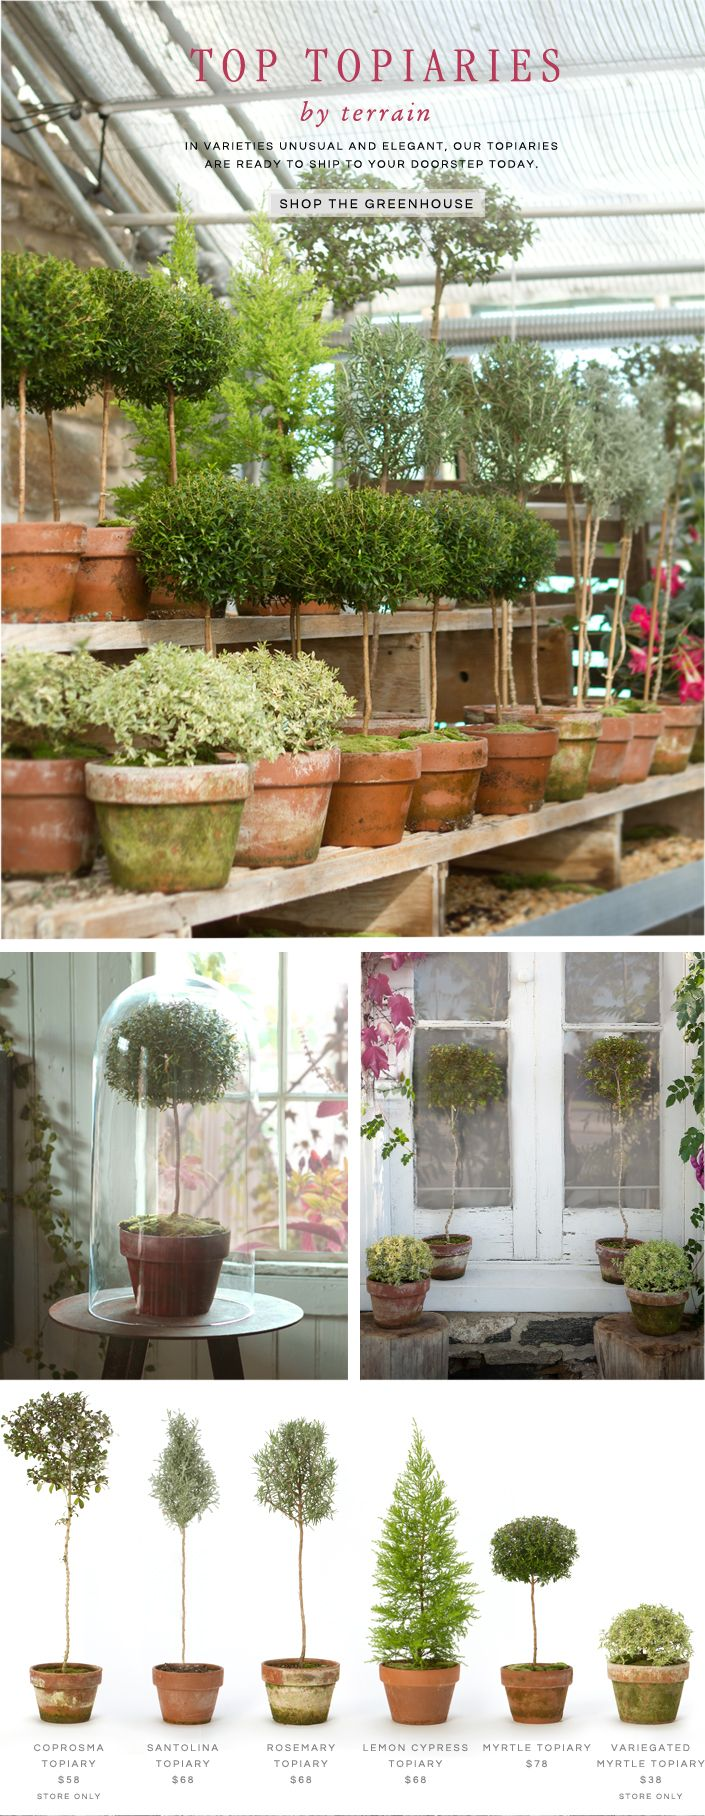 Top Topiaries by Terrain: In varieties unusual and elegant, our topiaries are ready to ship to your doorstep today.